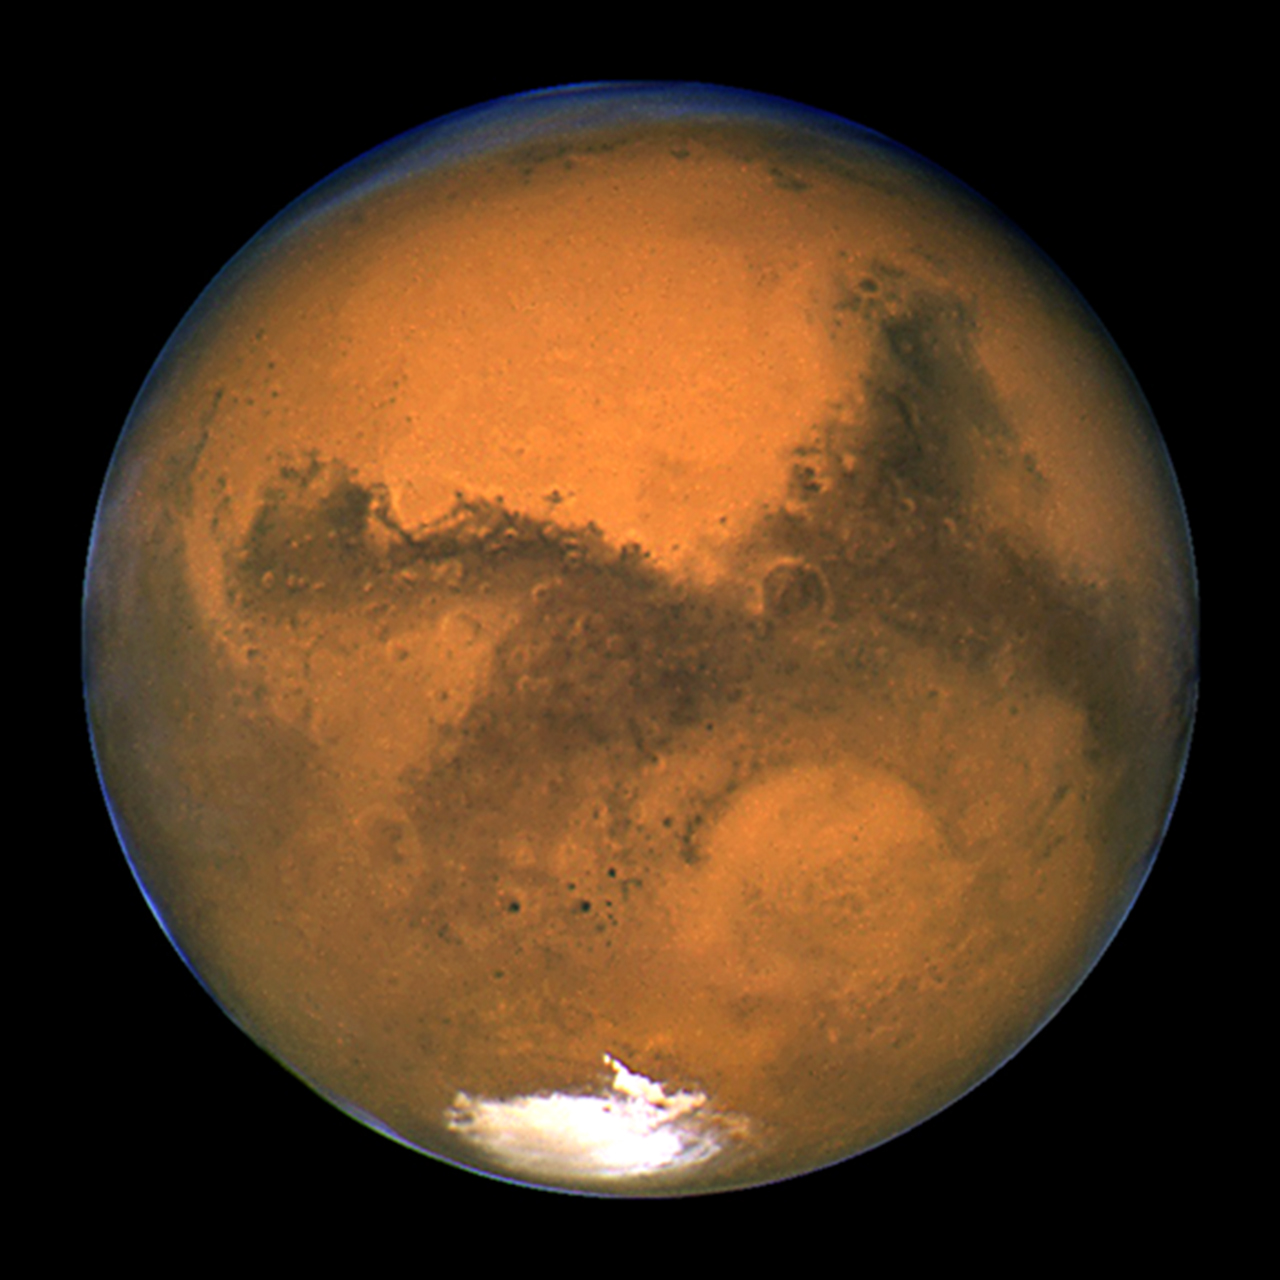 Photo courtesy of NASA.gov. The planet Mars.